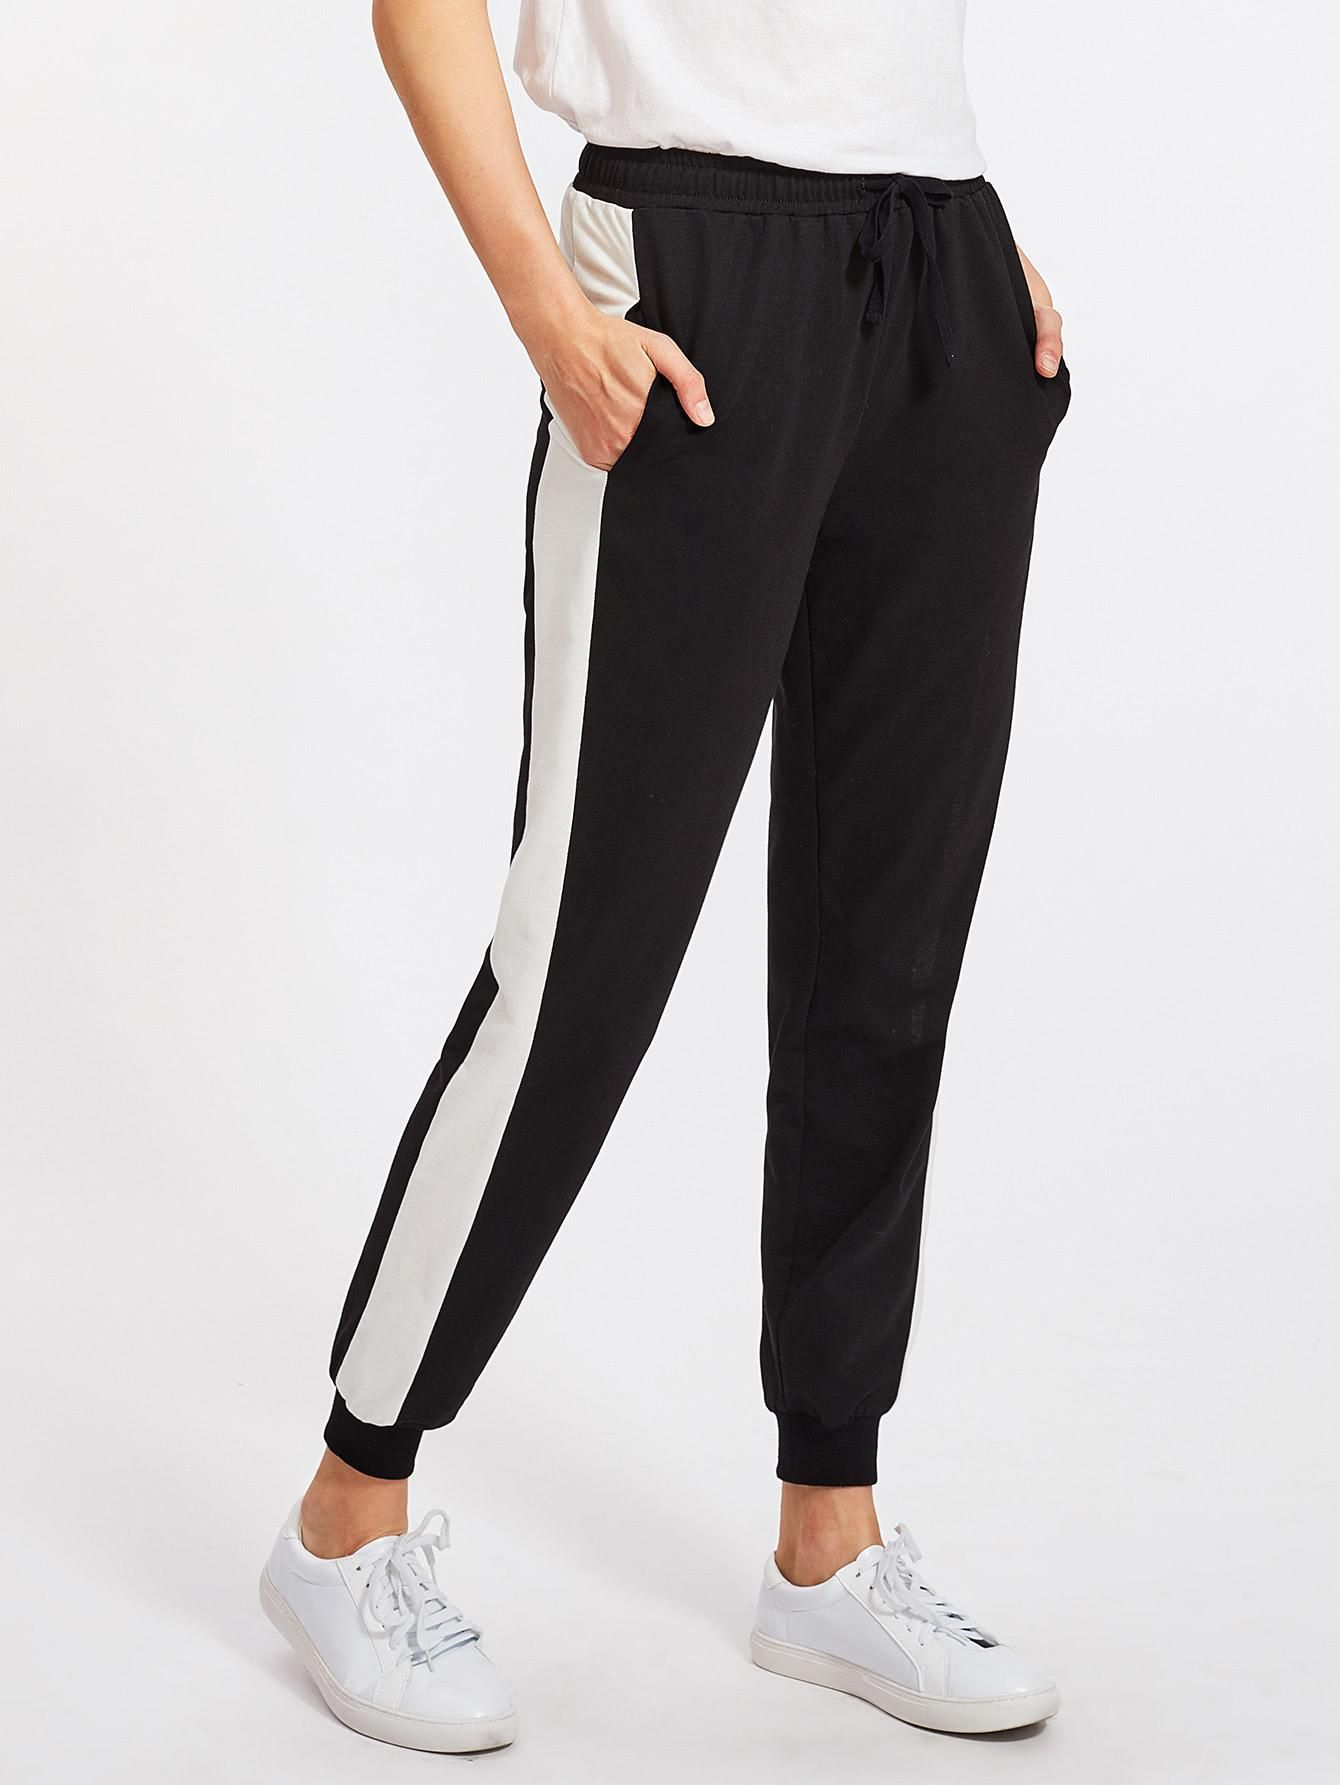 06ffe7d5267a SheIn - SheIn Contrast Panel Tapered Sweatpants - AdoreWe.com | Lose ...